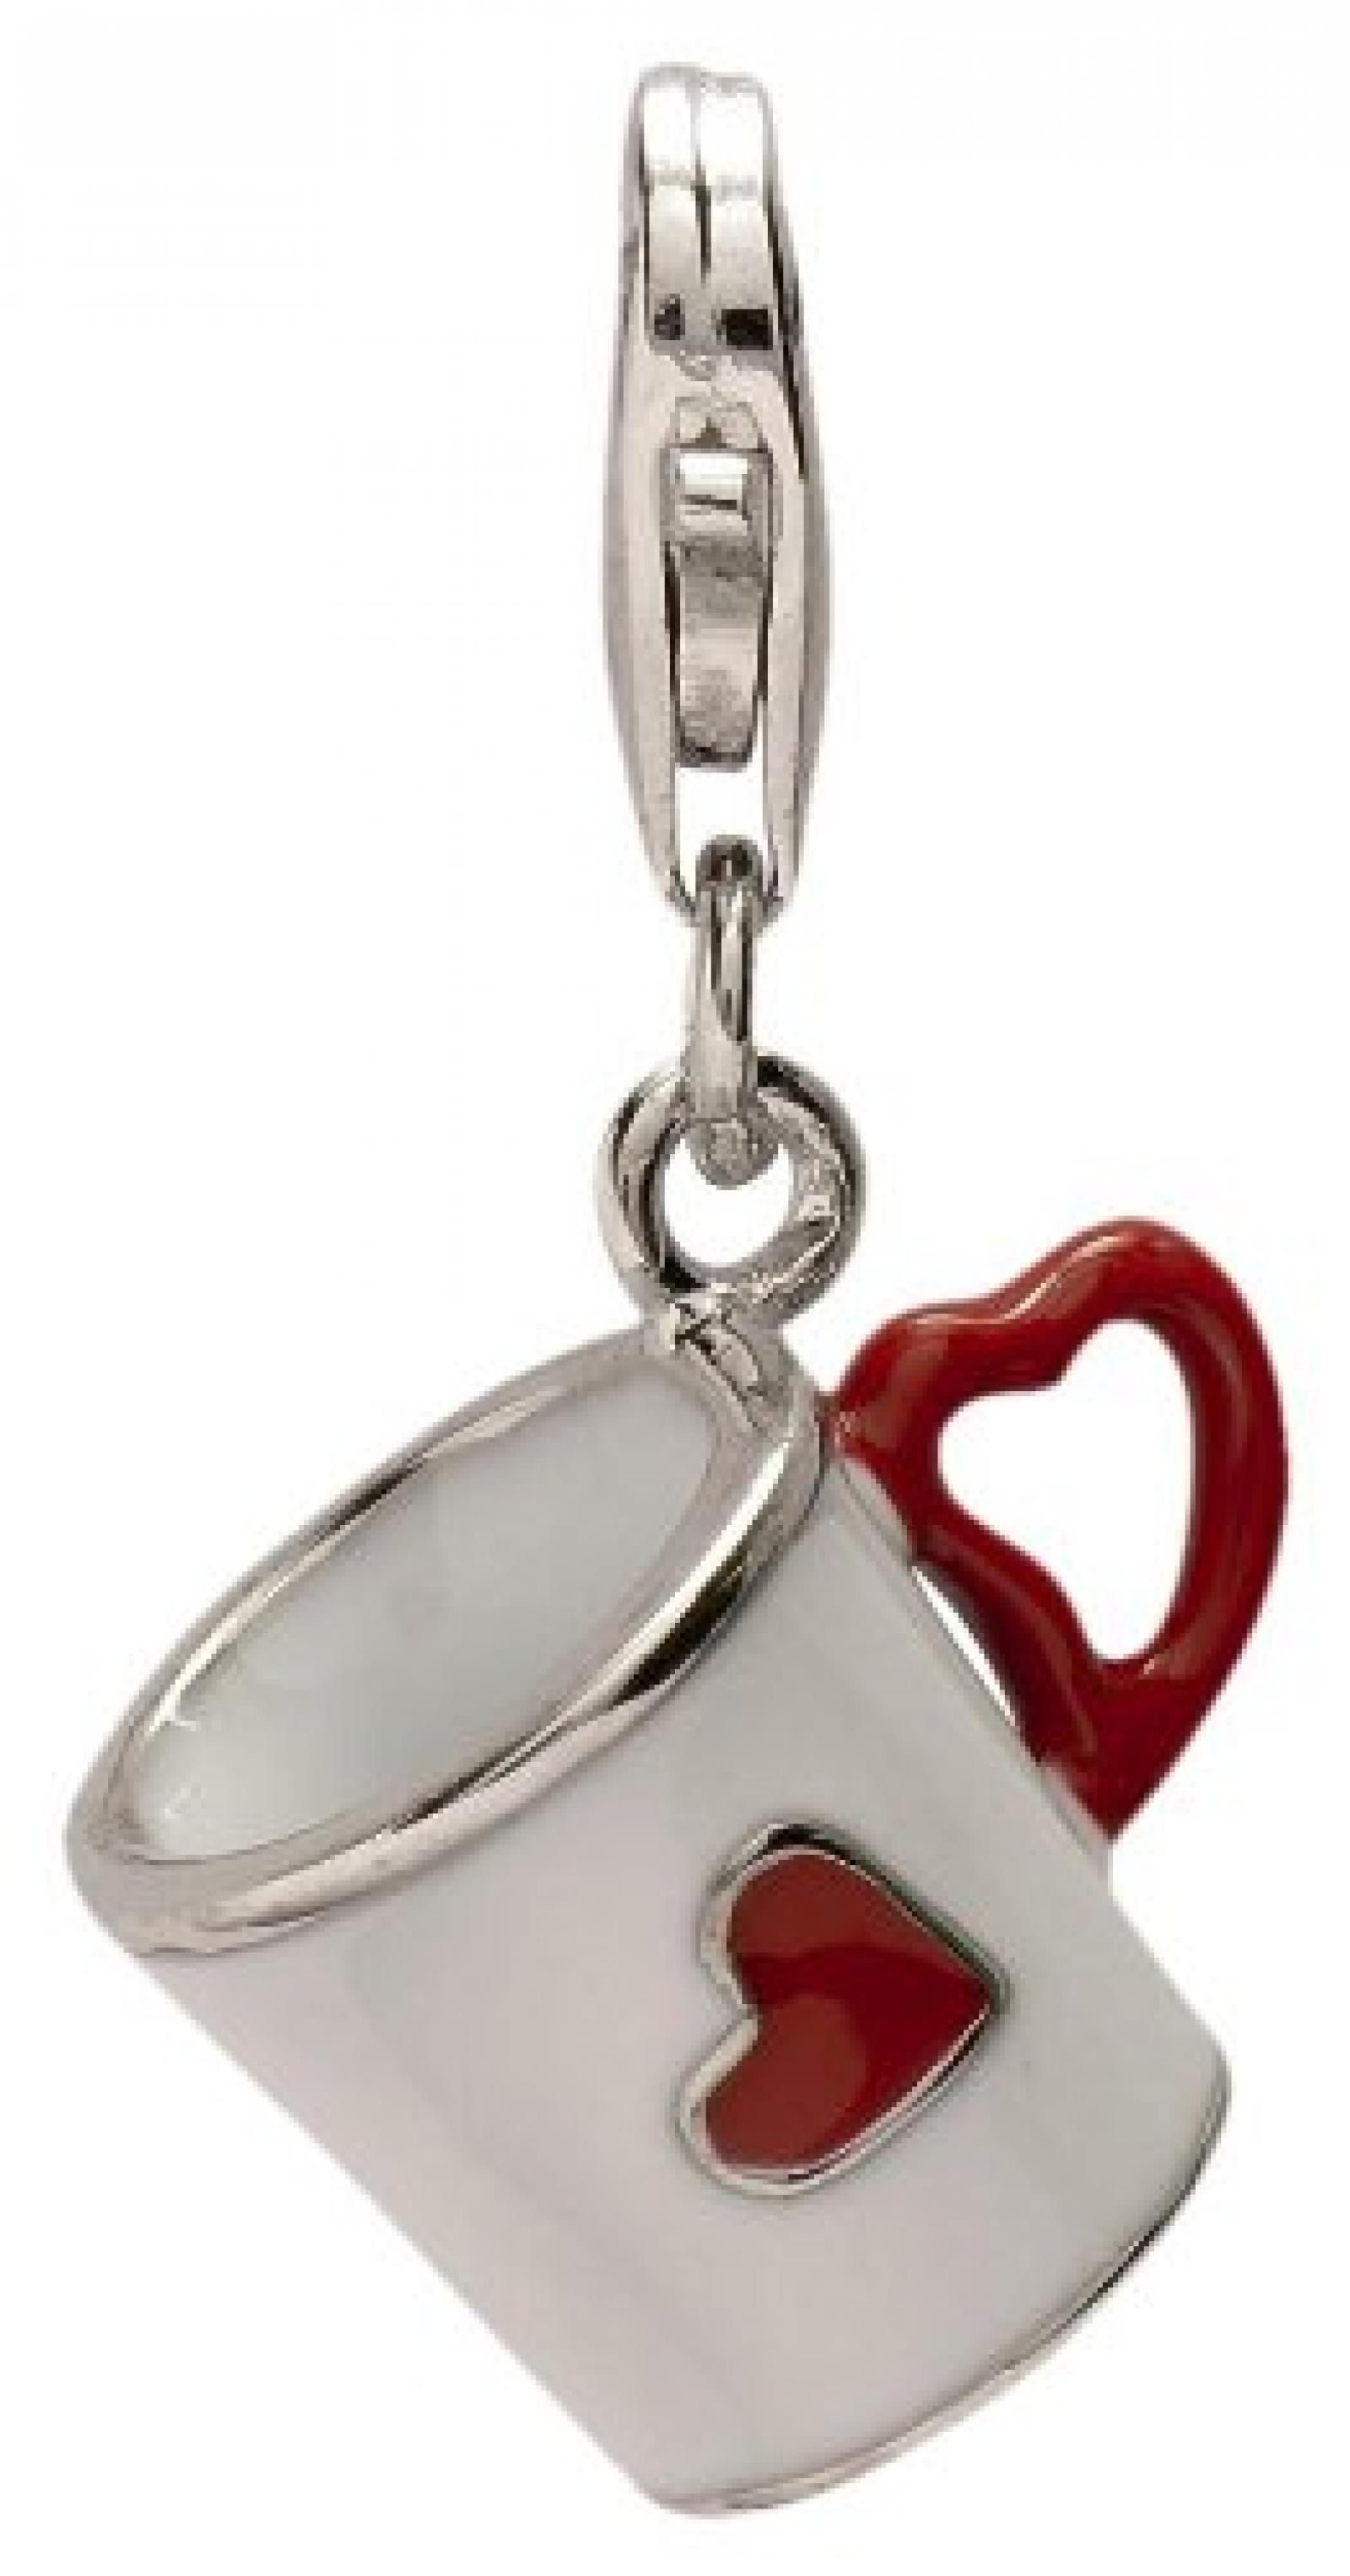 Rafaela Donata Charm Collection Damen-Charm Kaffeetasse 925 Sterling Silber Emaille weiß / rot  60602074